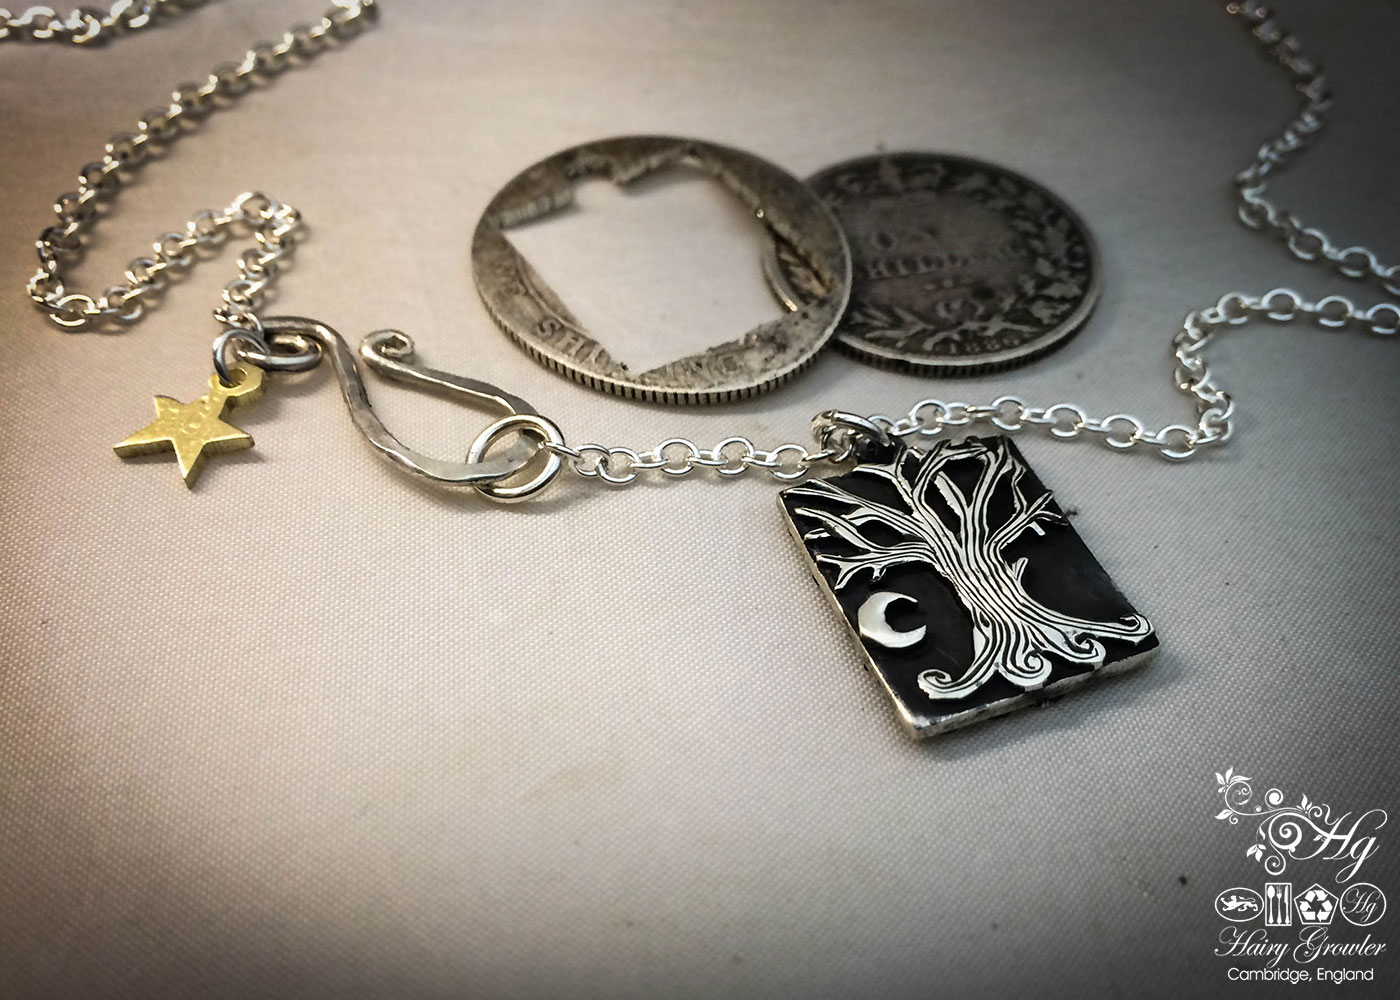 handcrafted and recycled silver Georgian shilling tree-of-life necklace pendant made in Cambridge